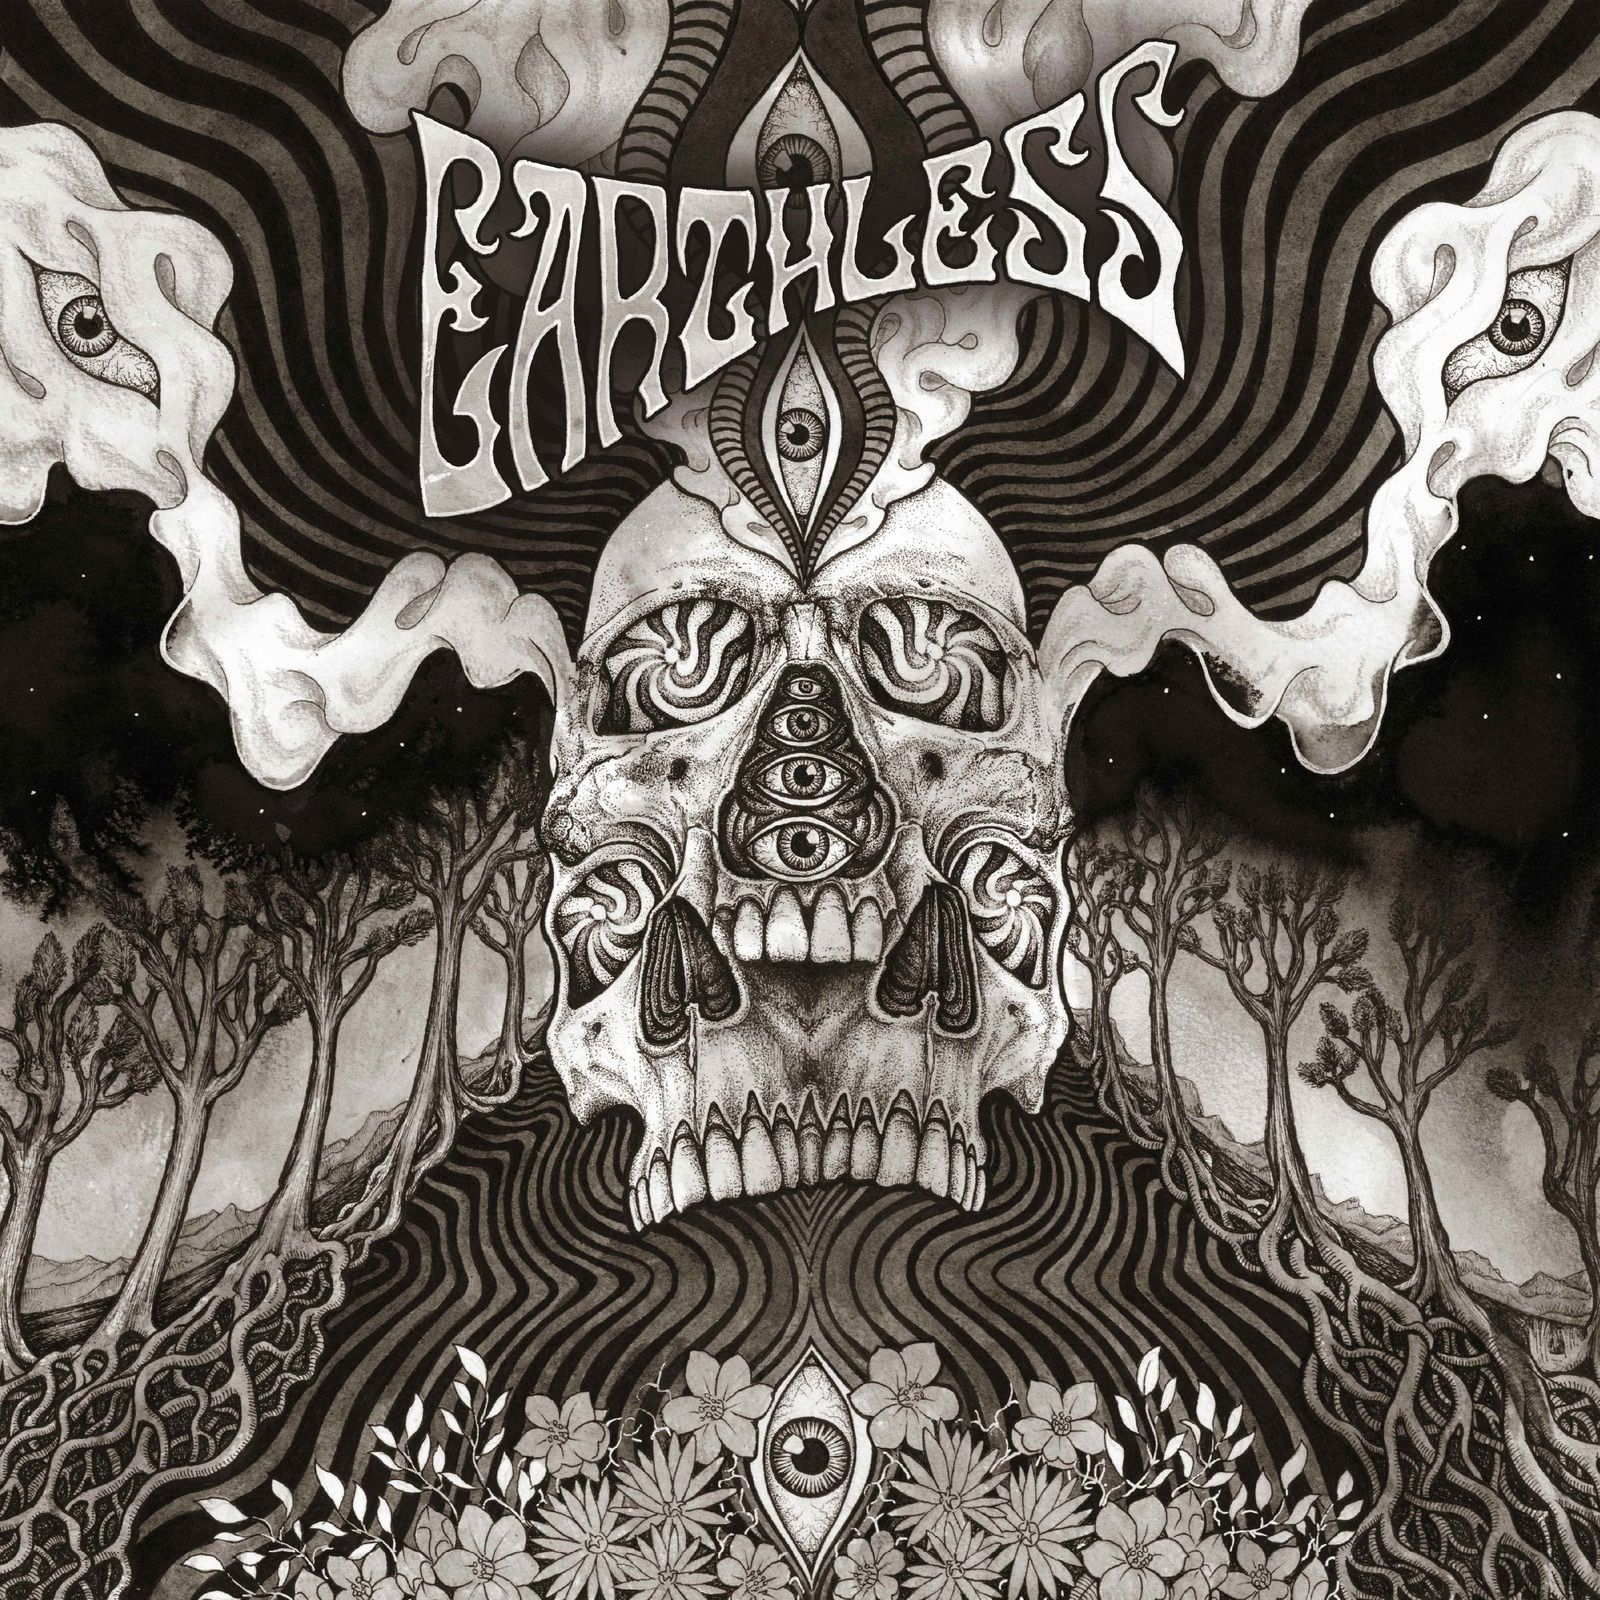 psychedelic rock - Markus' Heavy Music Blog